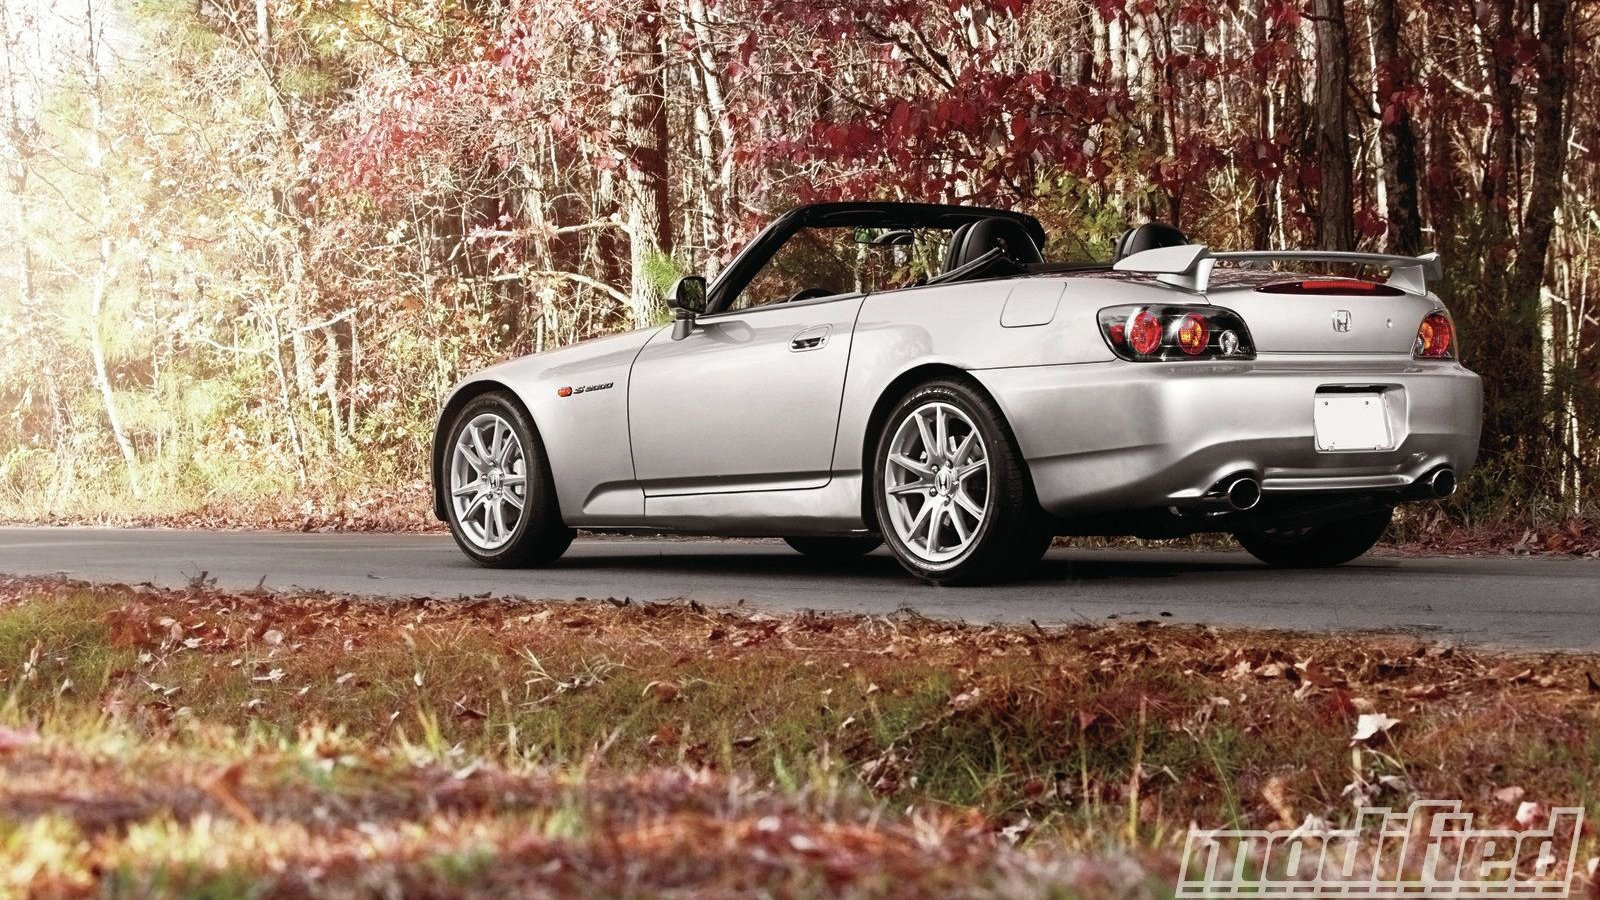 Would You Be in the Market for an Electric S2000?